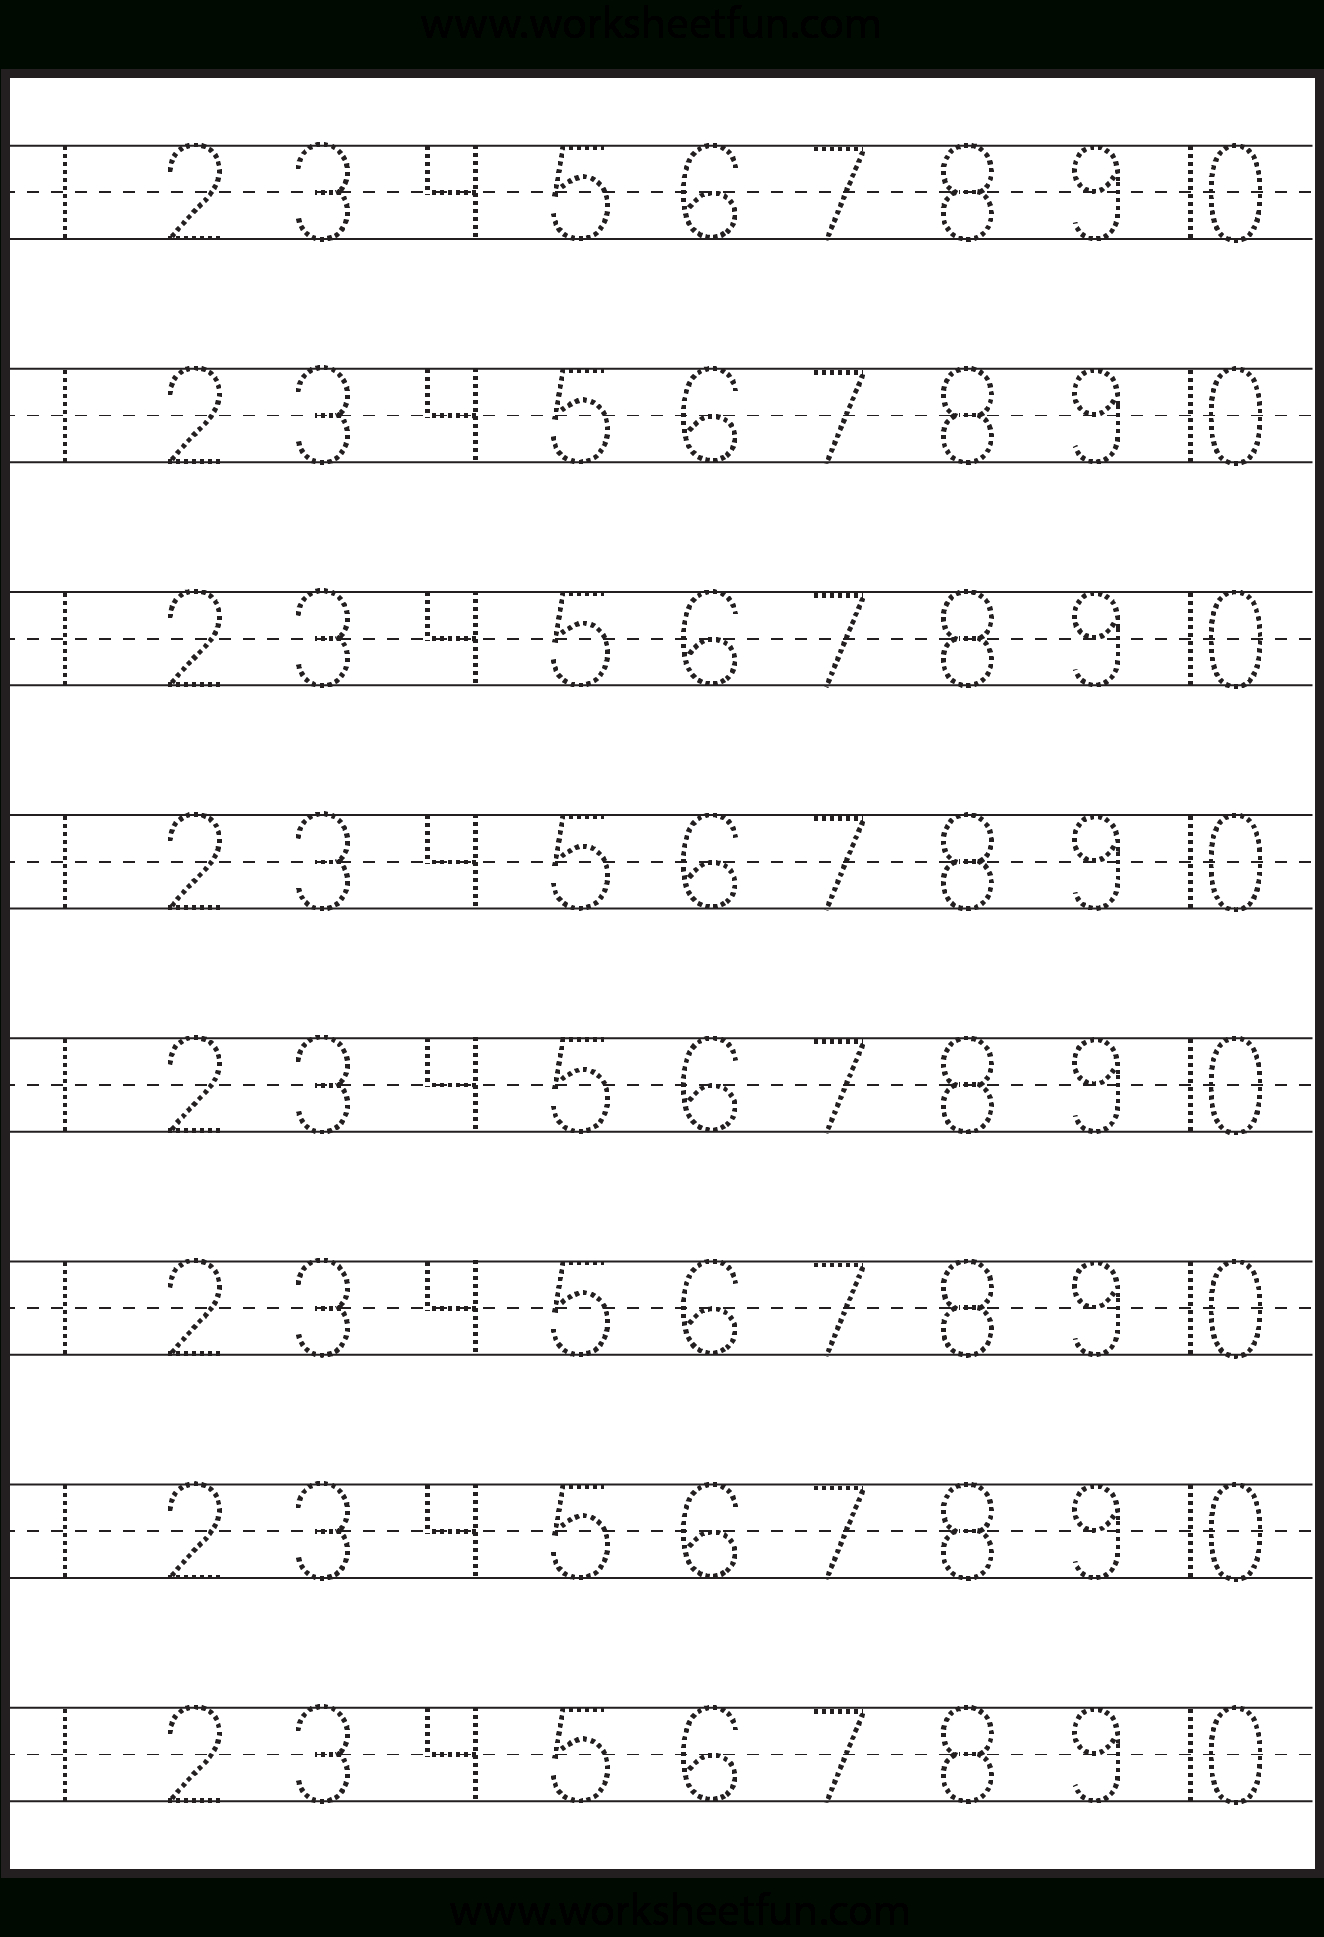 Number Tracing 1-10 - Worksheet | Kindergarten Worksheets - Free Printable Counting Worksheets 1 10